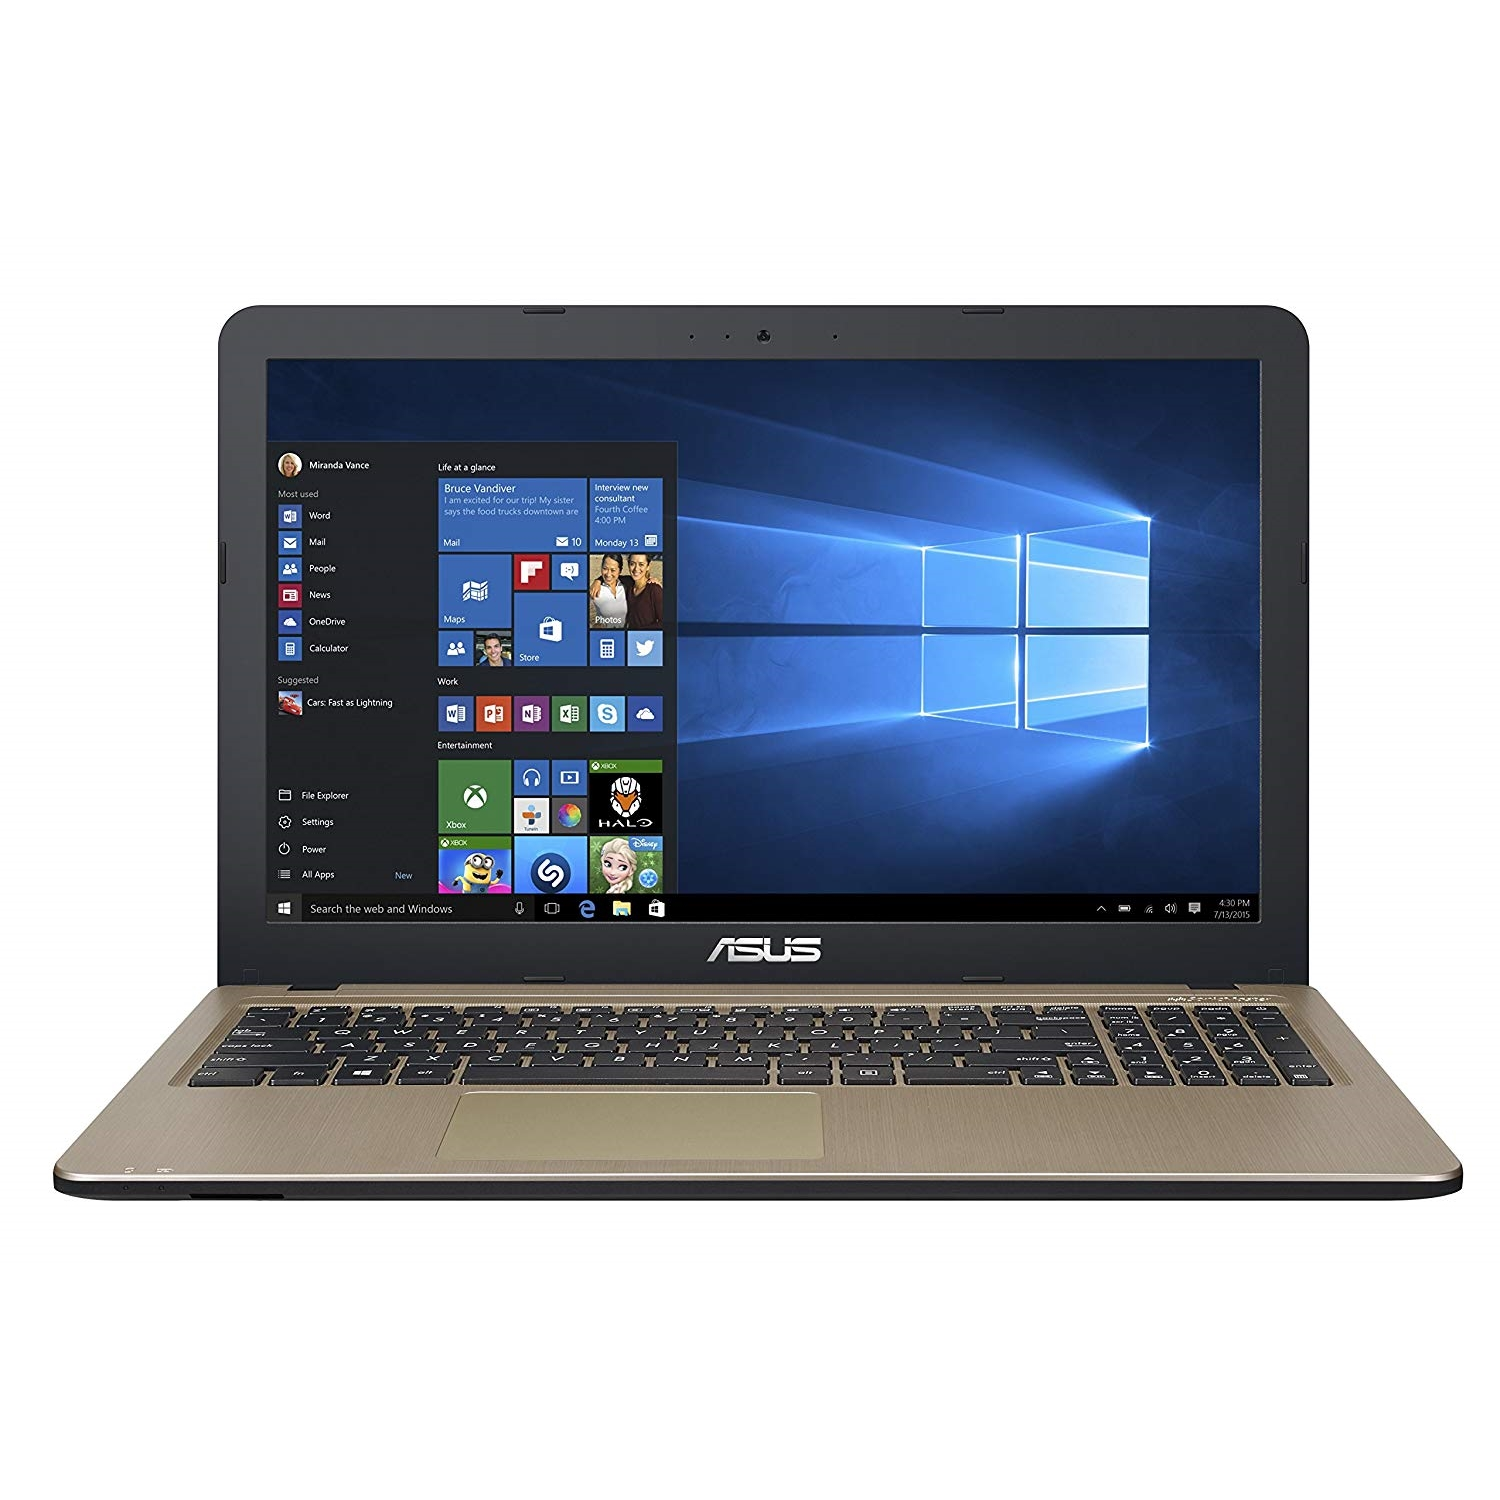 "ASUS X540UB-GQ359 I5-8250U 4GB 1TB 2GB MX110 15.6"" FREEDOS NOTEBOOK"